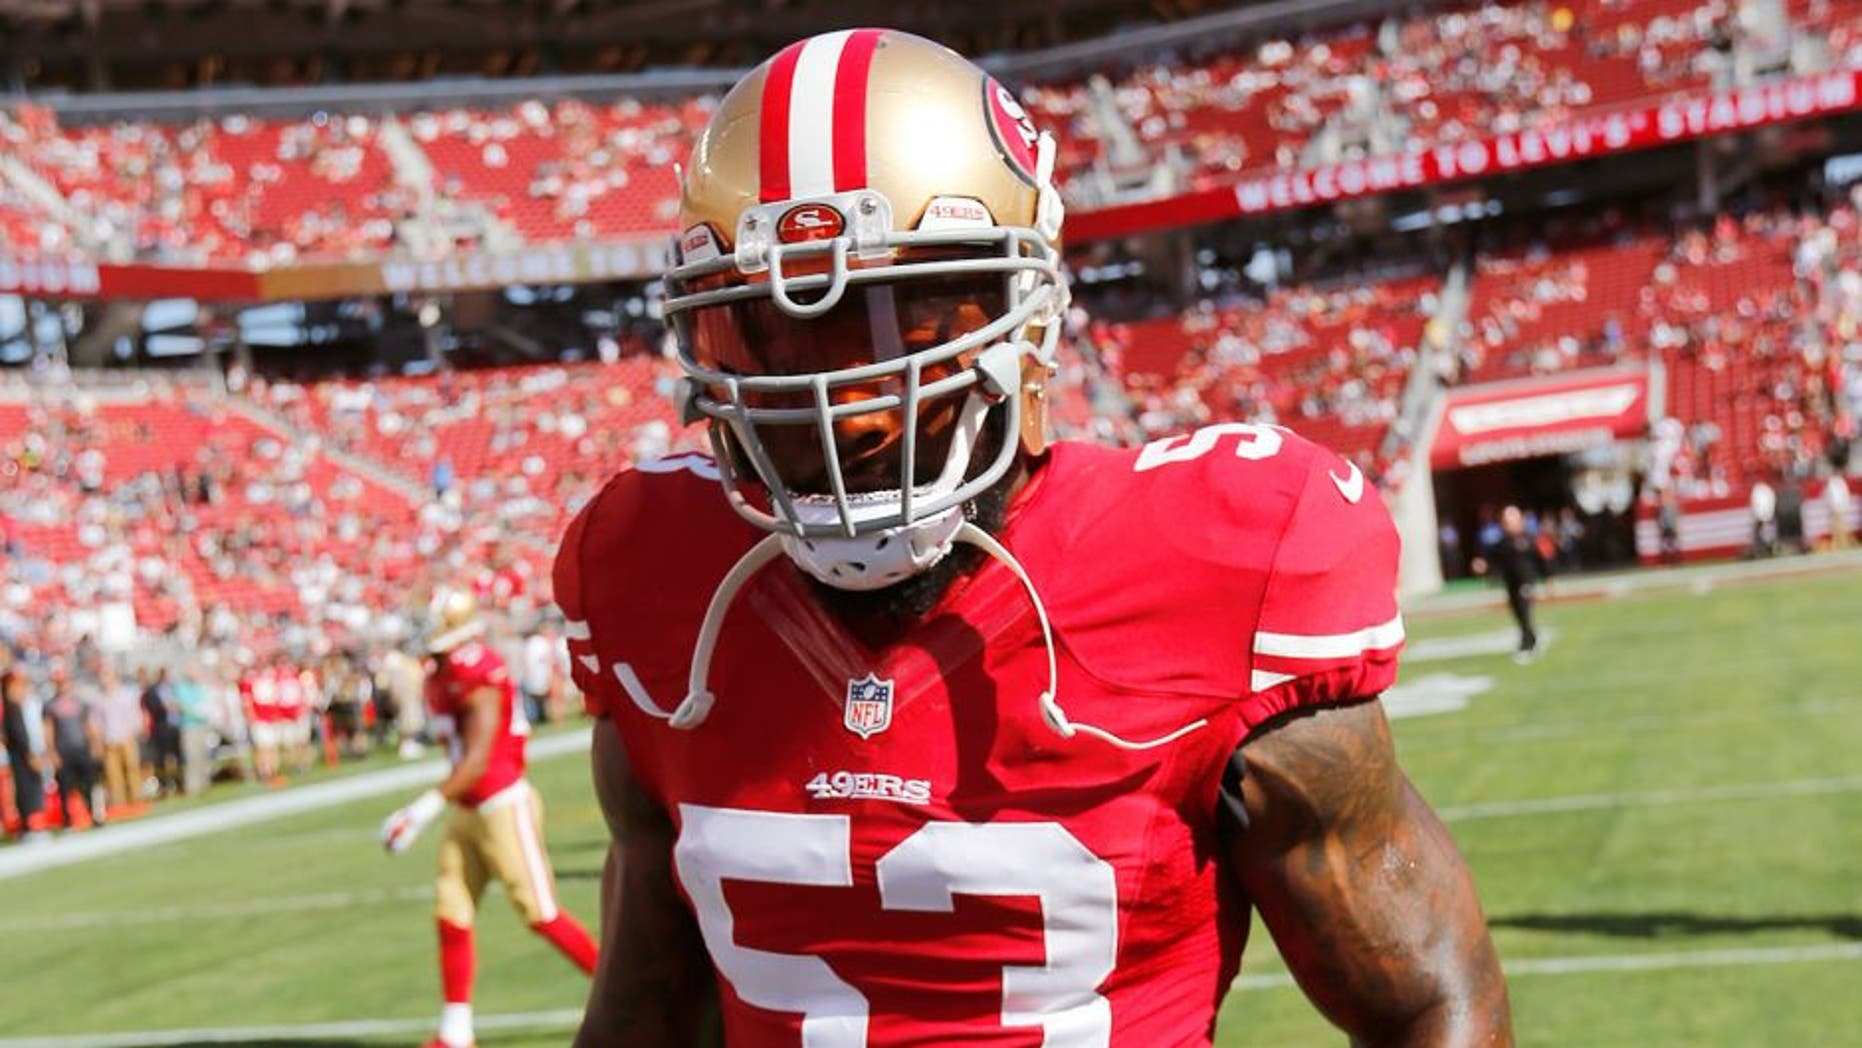 SANTA CLARA, CA - AUGUST 23: NaVorro Bowman #53 of the San Francisco 49ers stands on the field prior to the game against the Dallas Cowboys at Levi Stadium on August 23, 2015 in Santa Clara, California. The 49ers defeated the Cowboys 23-6. (Photo by Michael Zagaris/San Francisco 49ers/Getty Images)